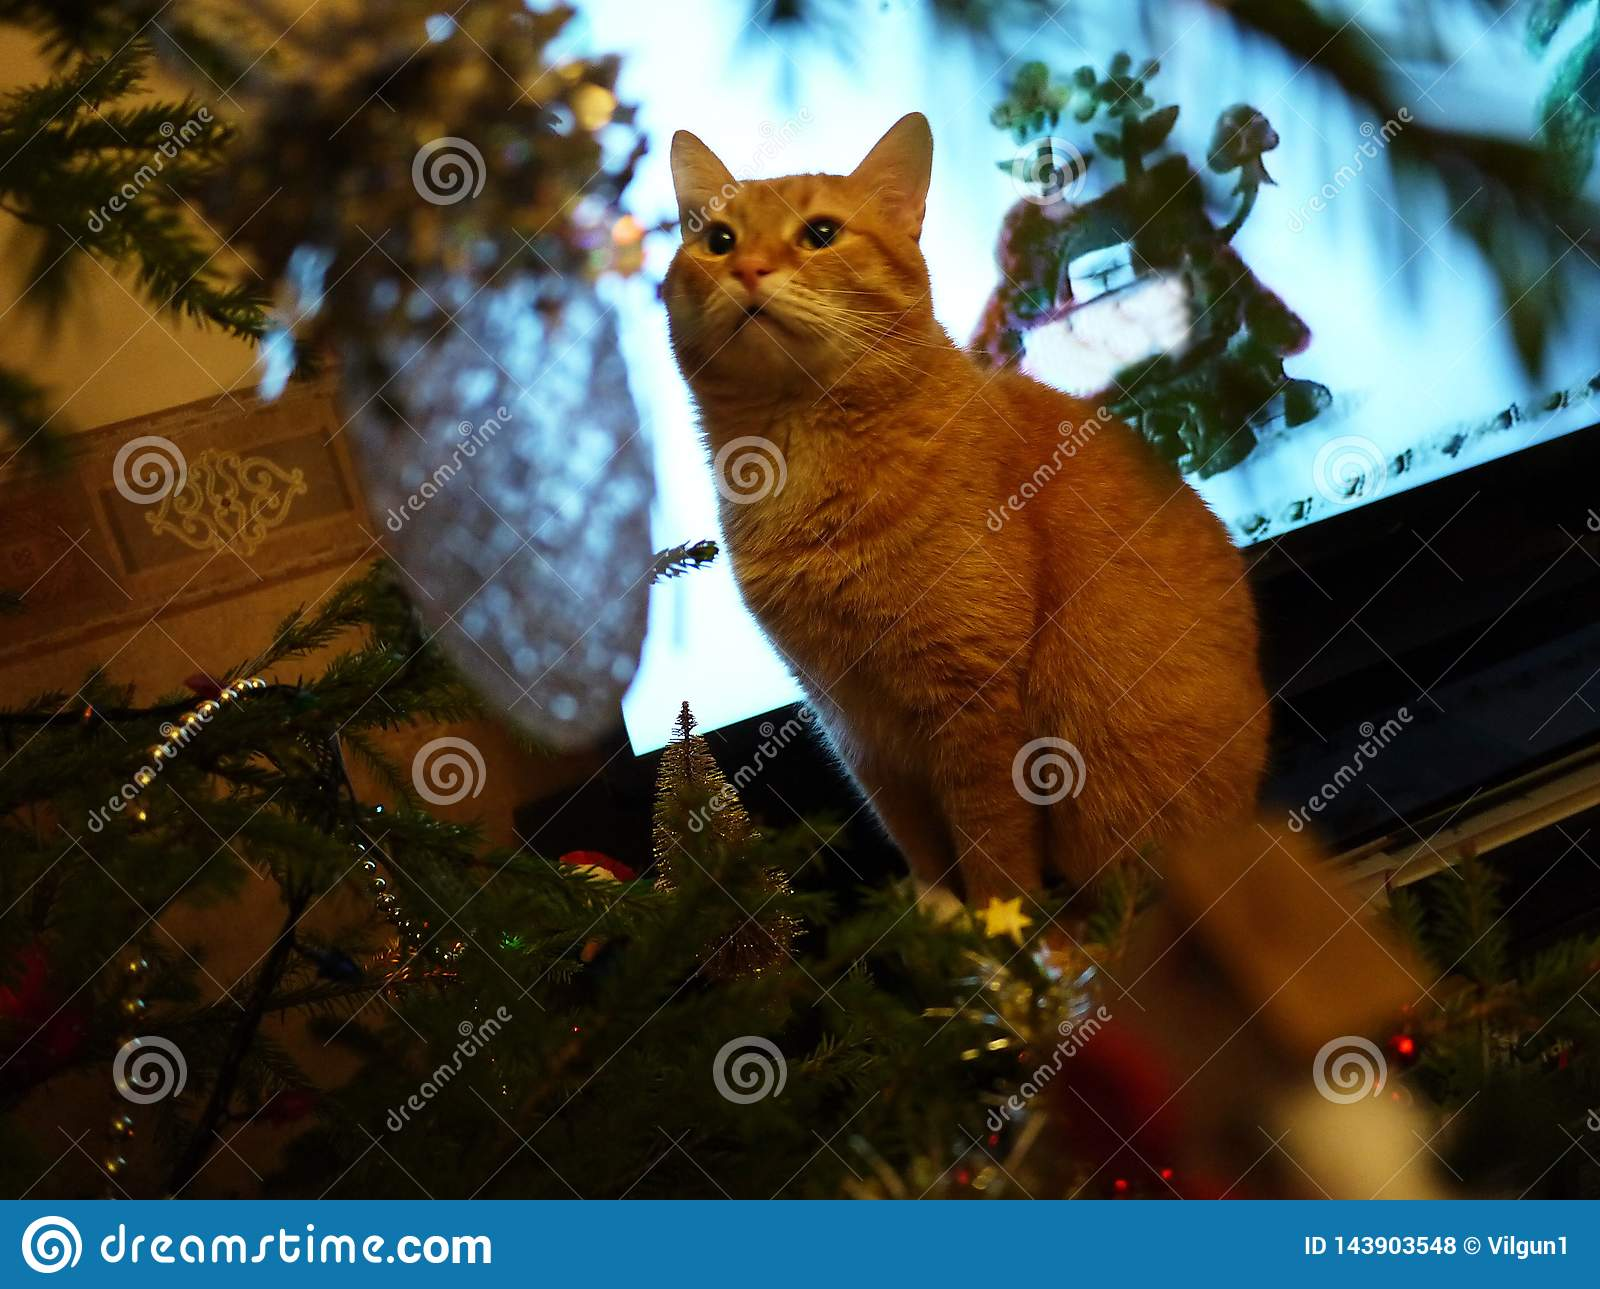 Red cat and tree. Beautiful cat next to the Christmas tree